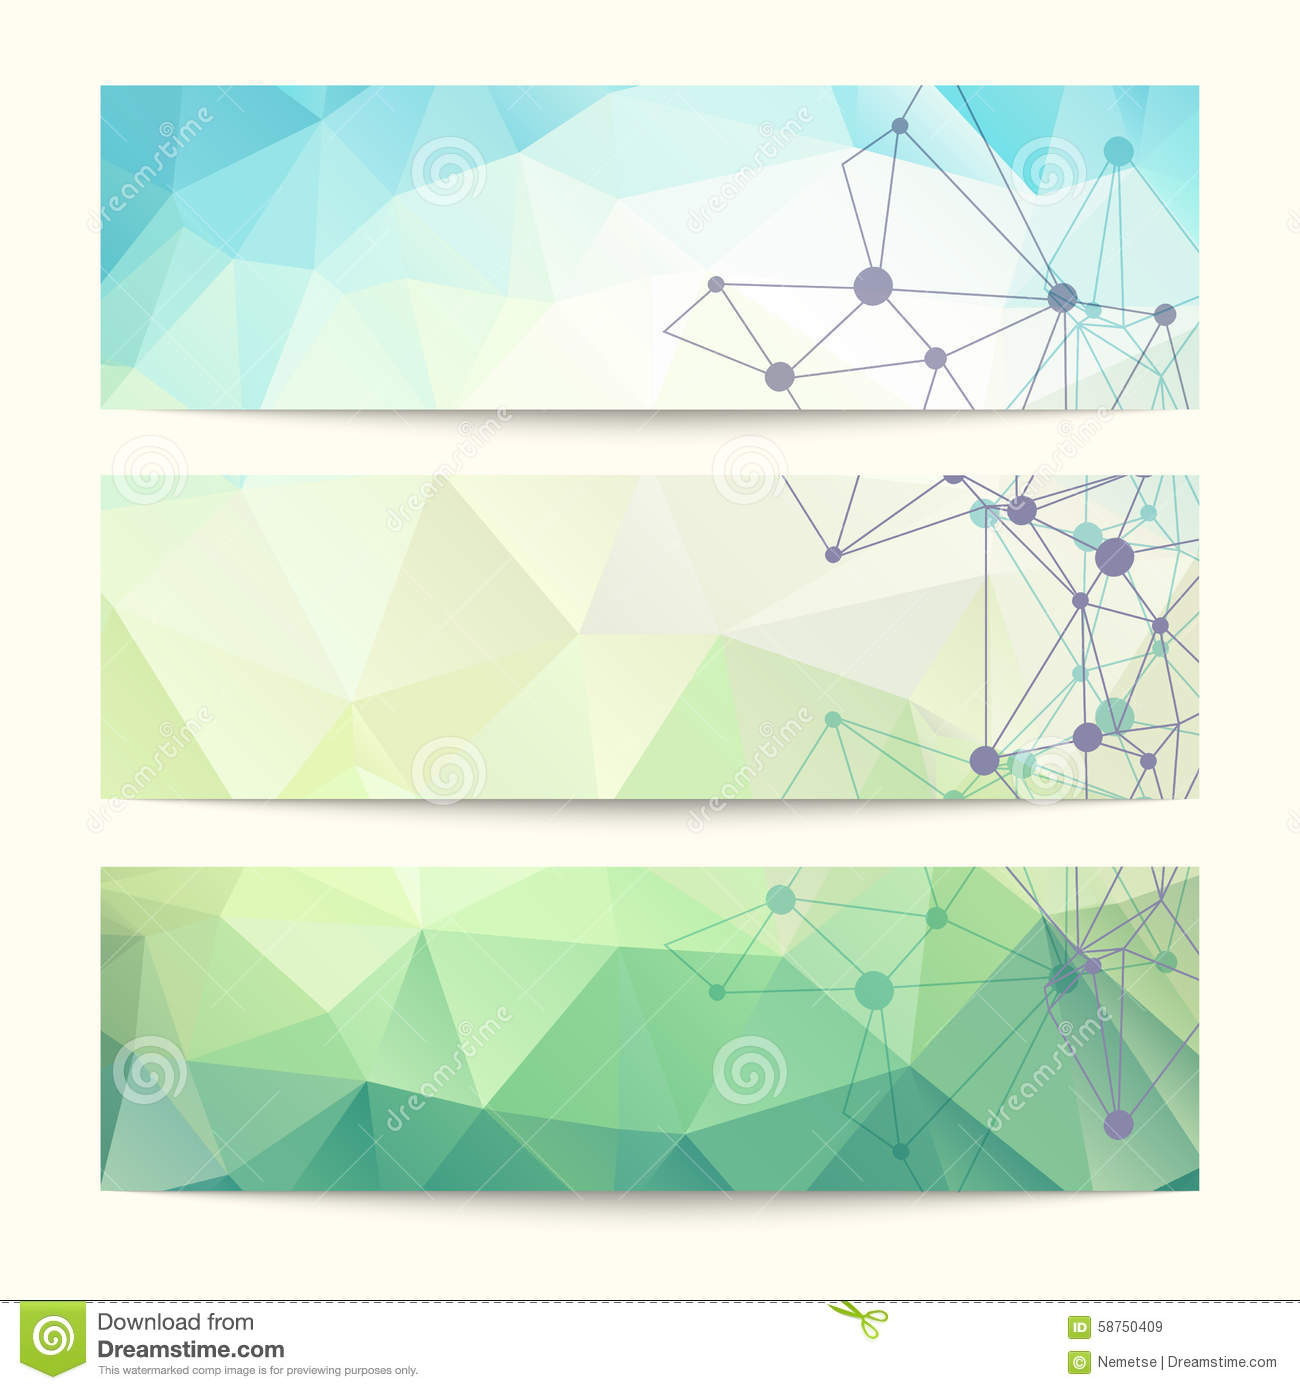 Design banner free download - Royalty Free Vector